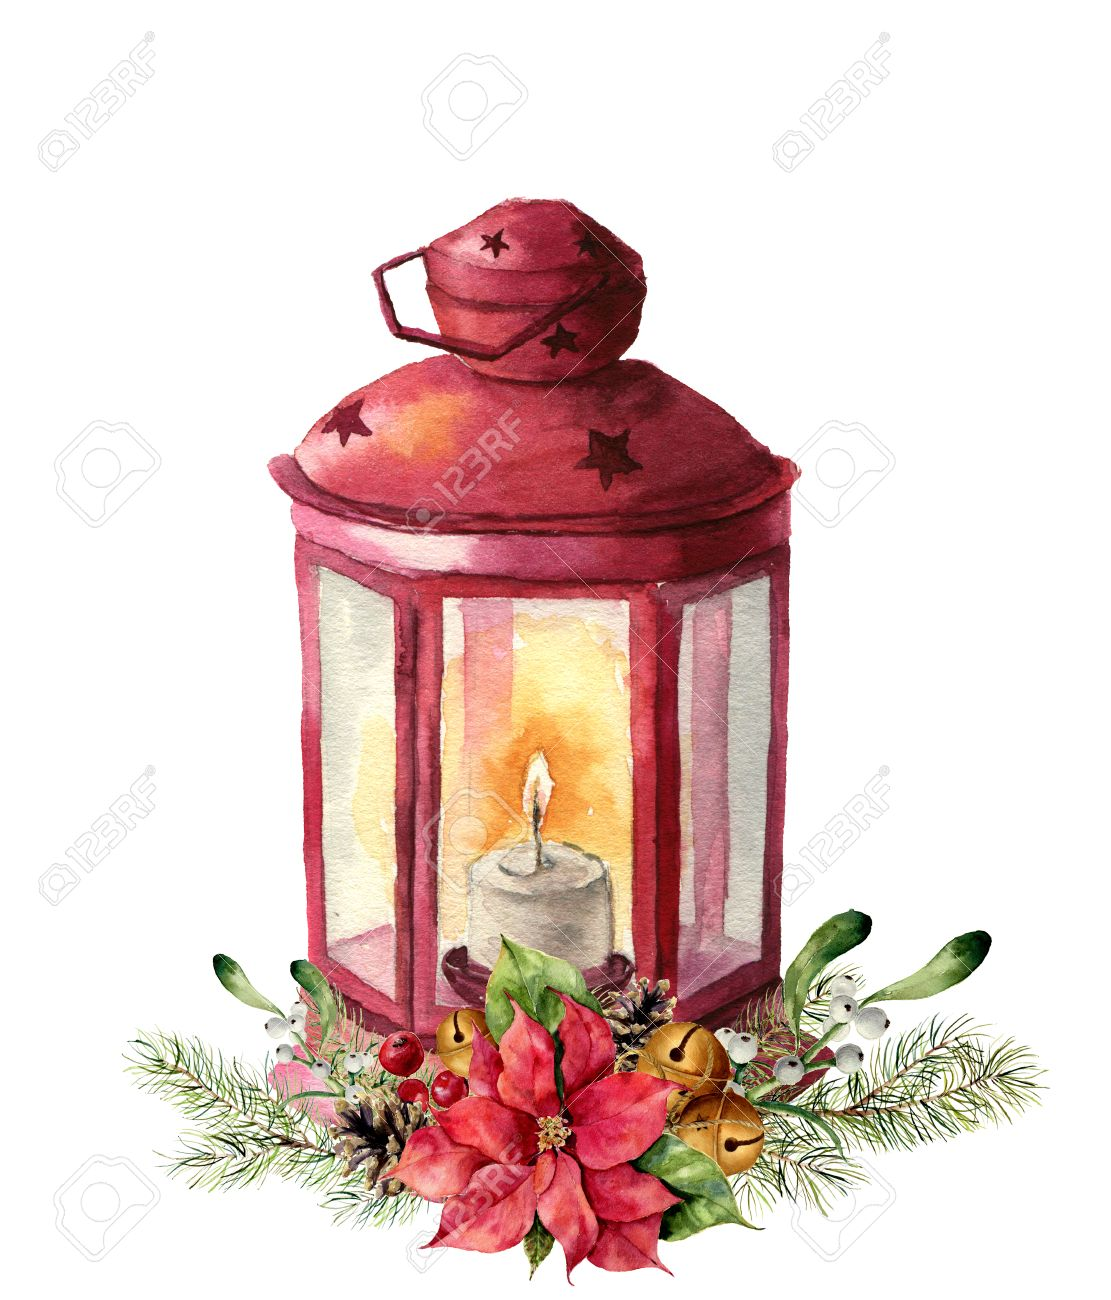 Watercolor Traditional Red Lantern With Candle And Floral Decor ...